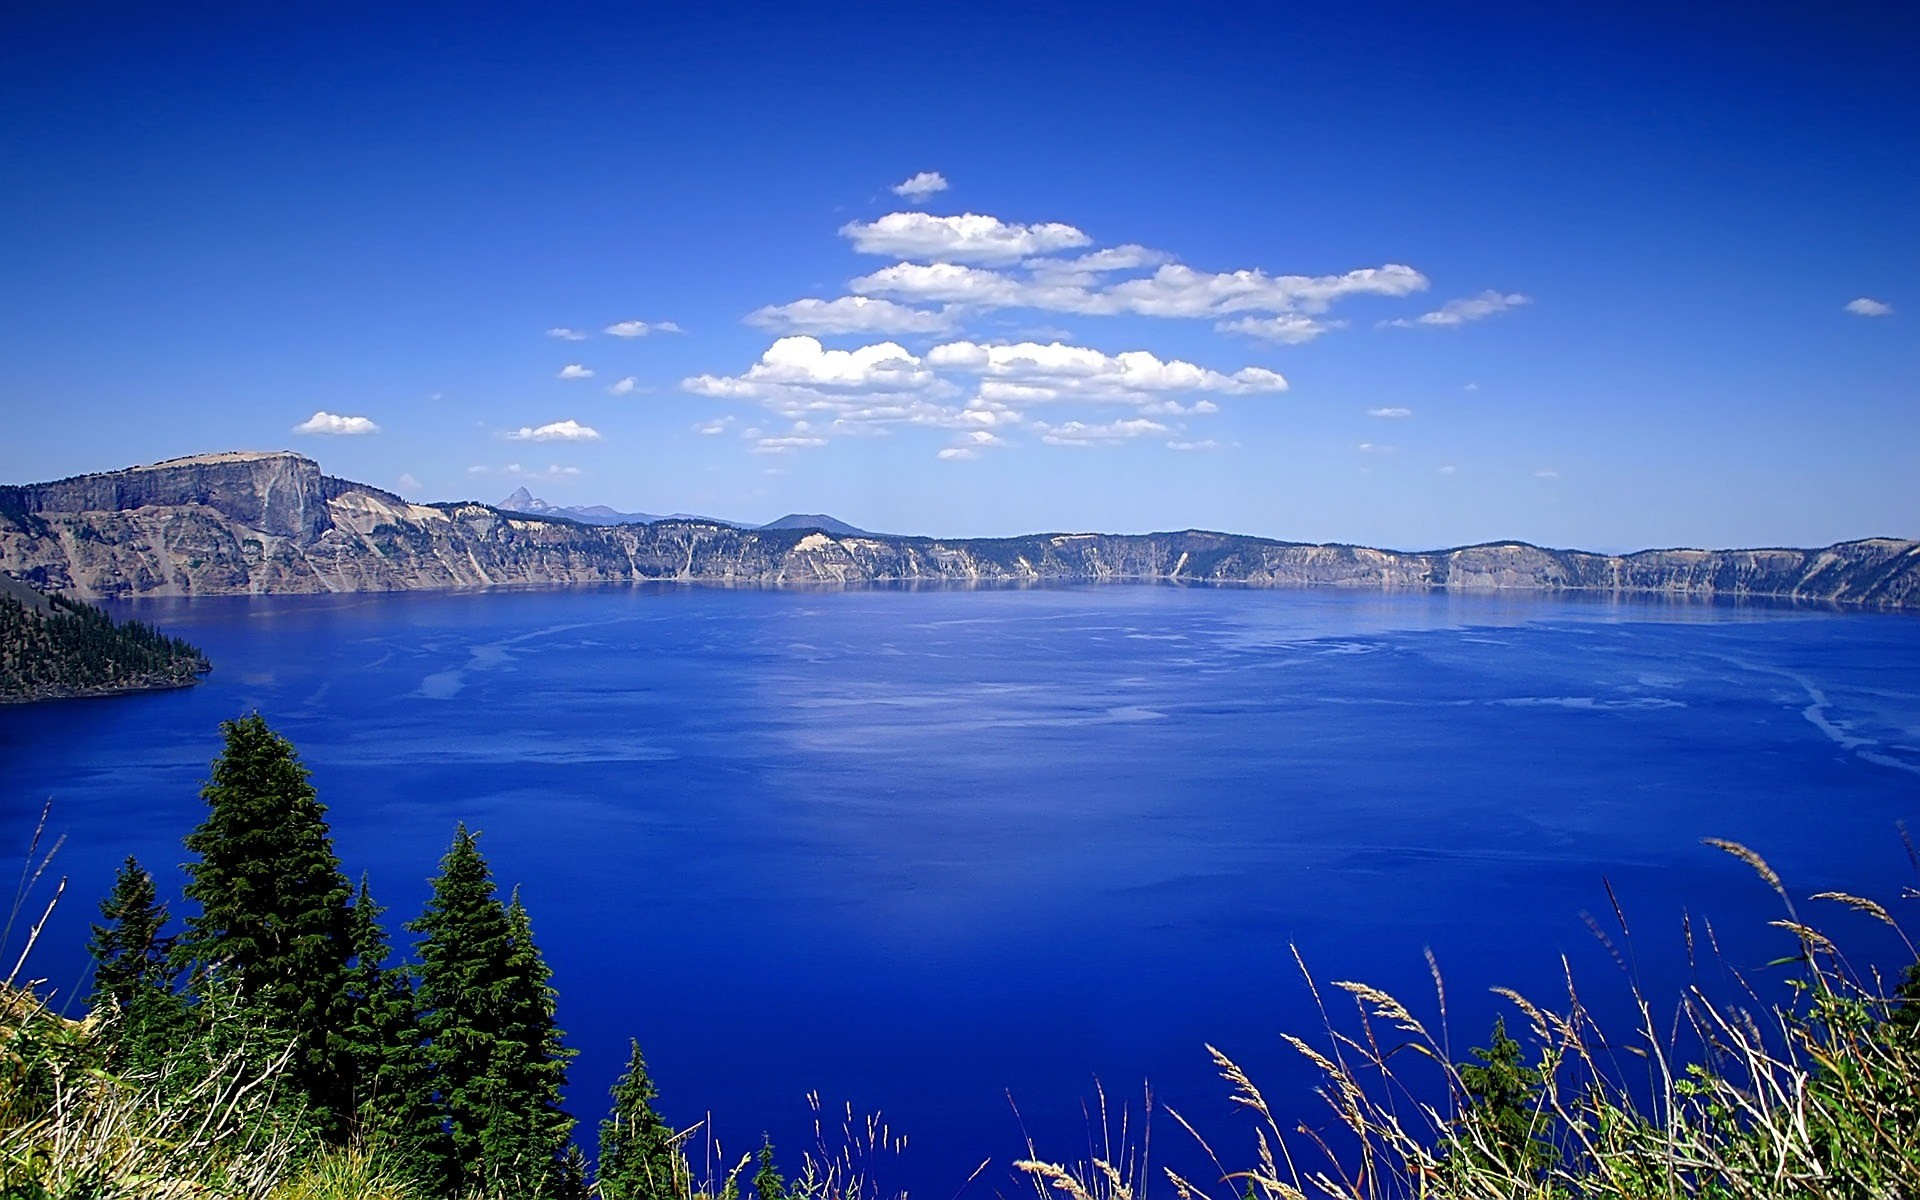 1920x1200 Blue Lake Wallpaper Landscape Nature Wallpapers